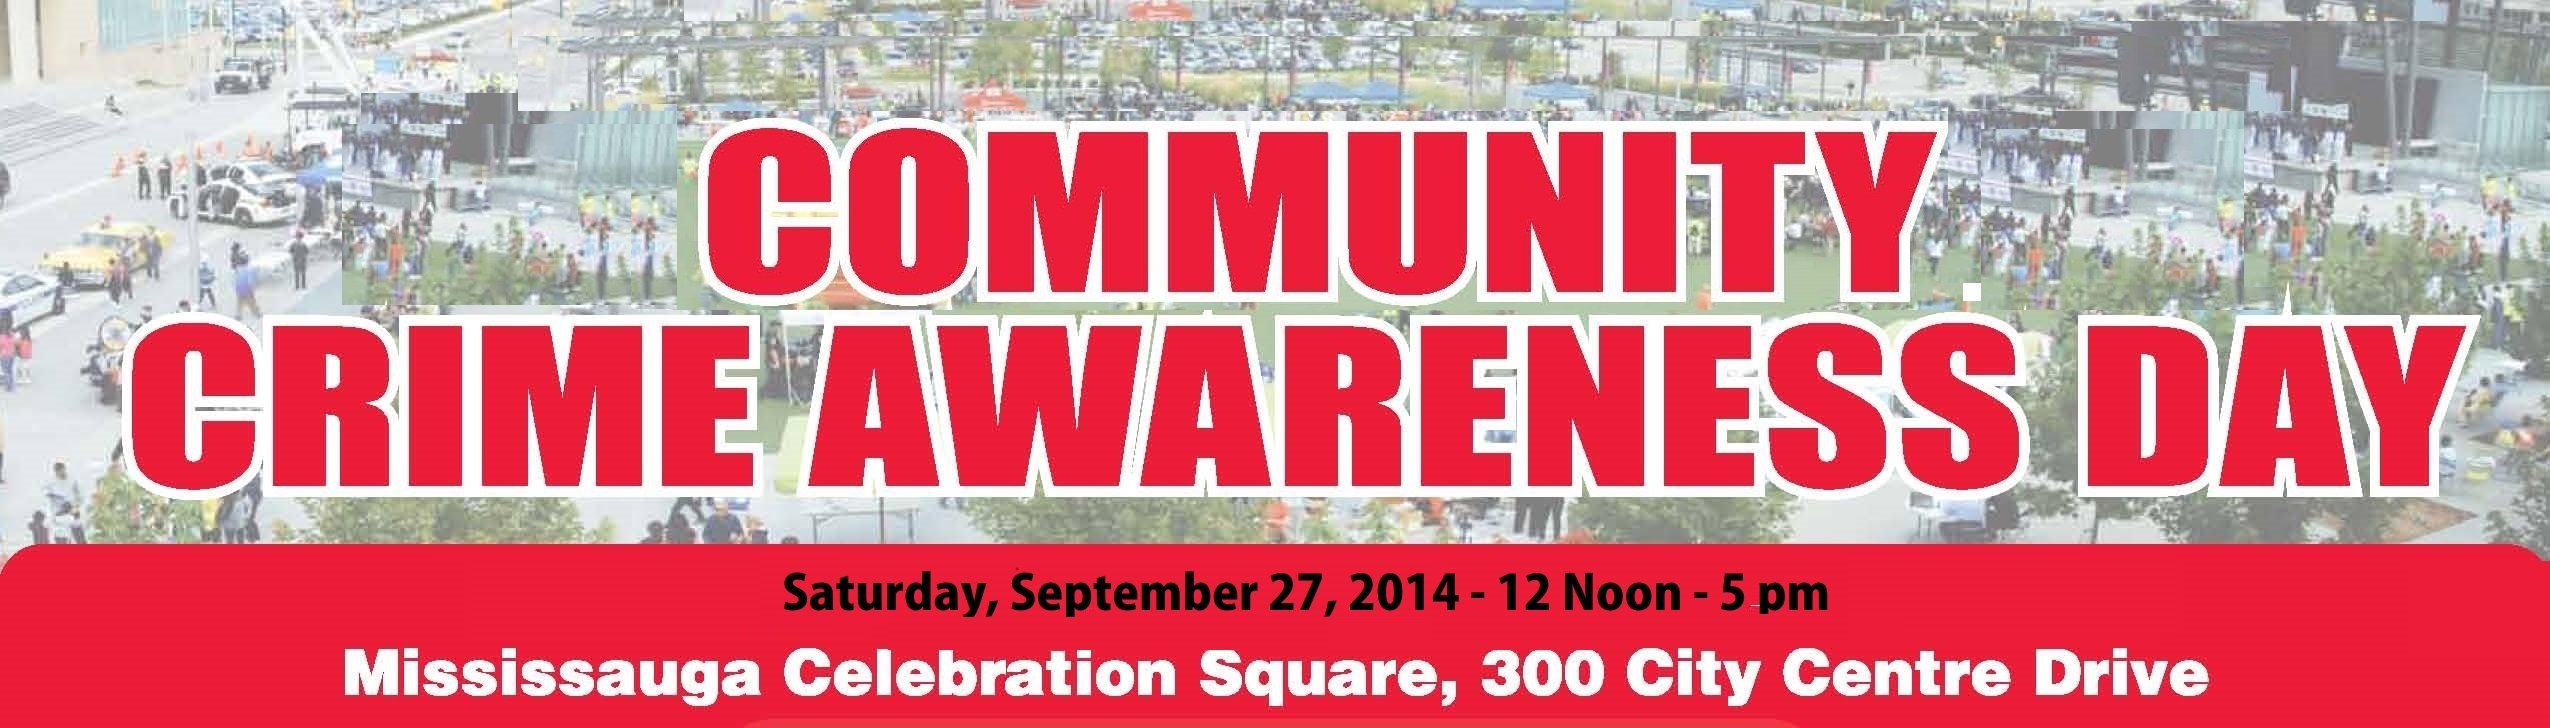 Community Crime Awareness Day adapted image from http://www.crimeawareness.ca/event.php